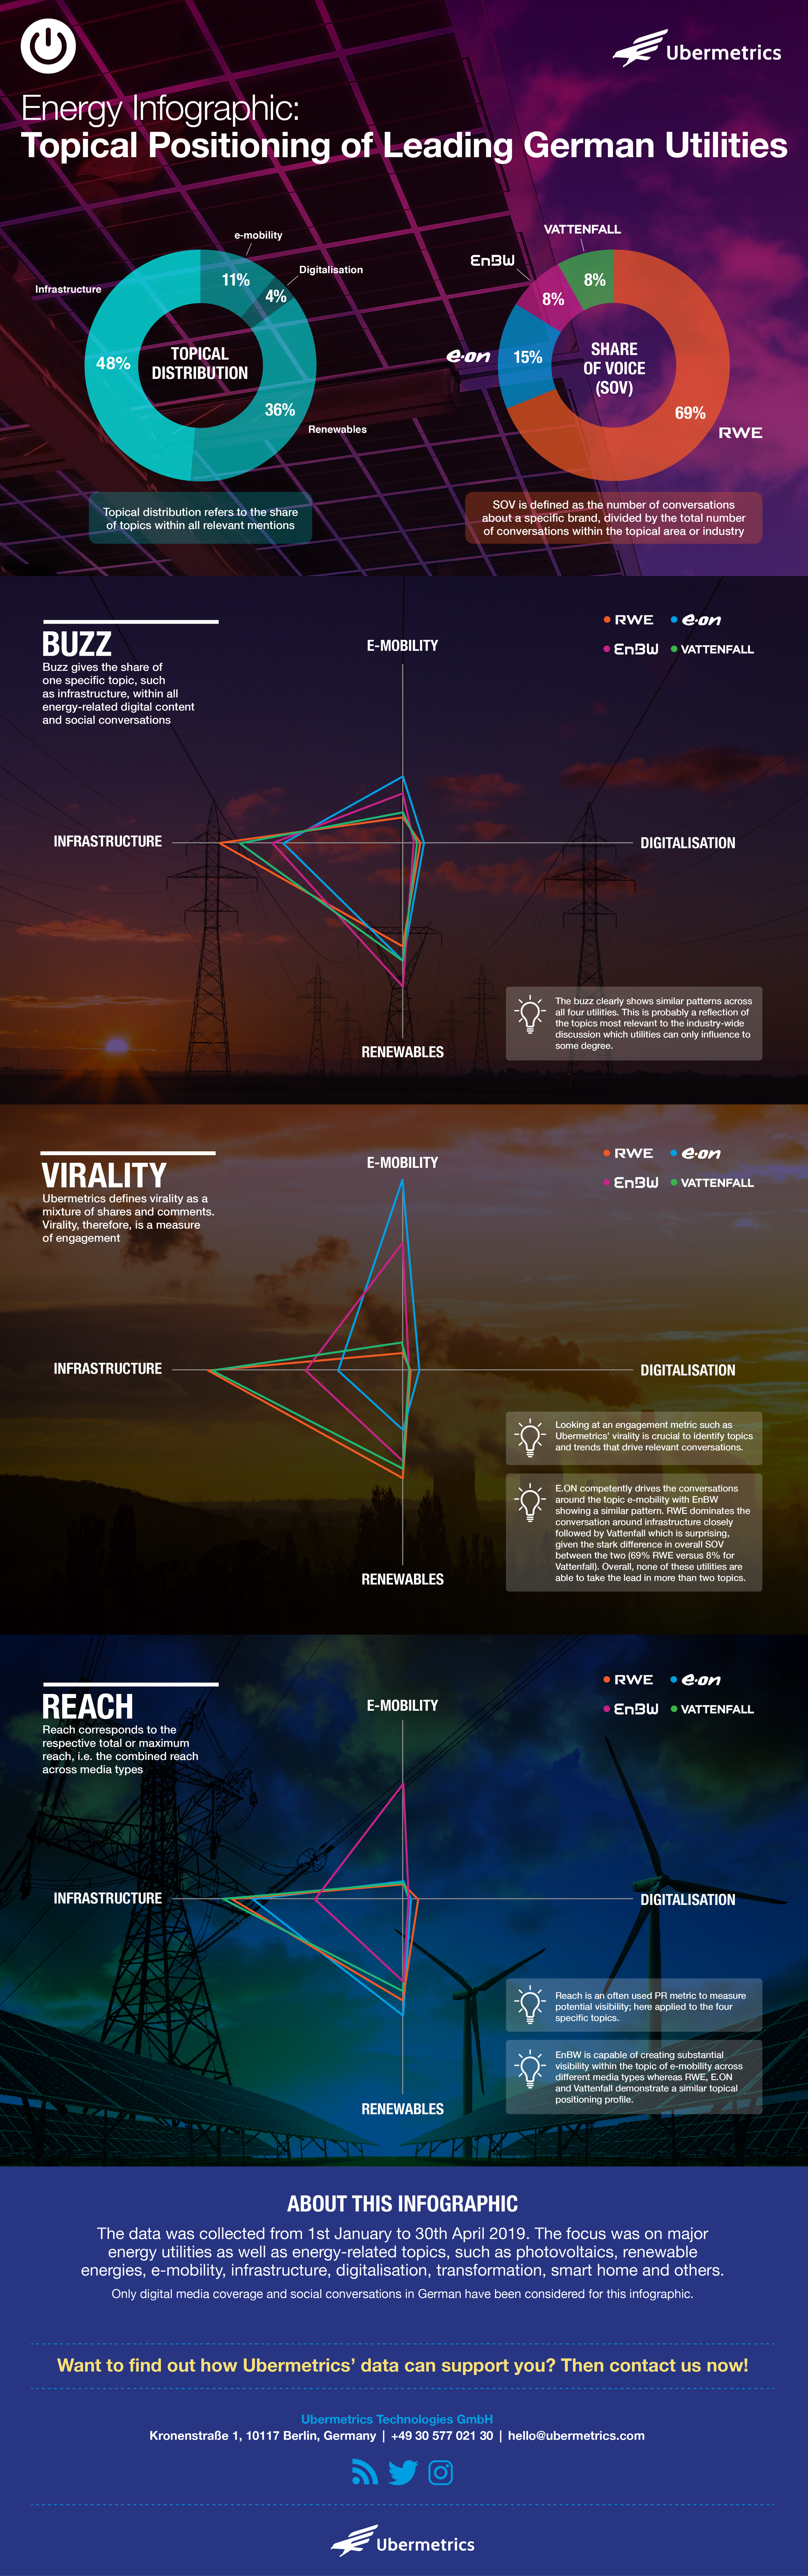 Infographic: Topical Positioning of Leading German Energy Utilities